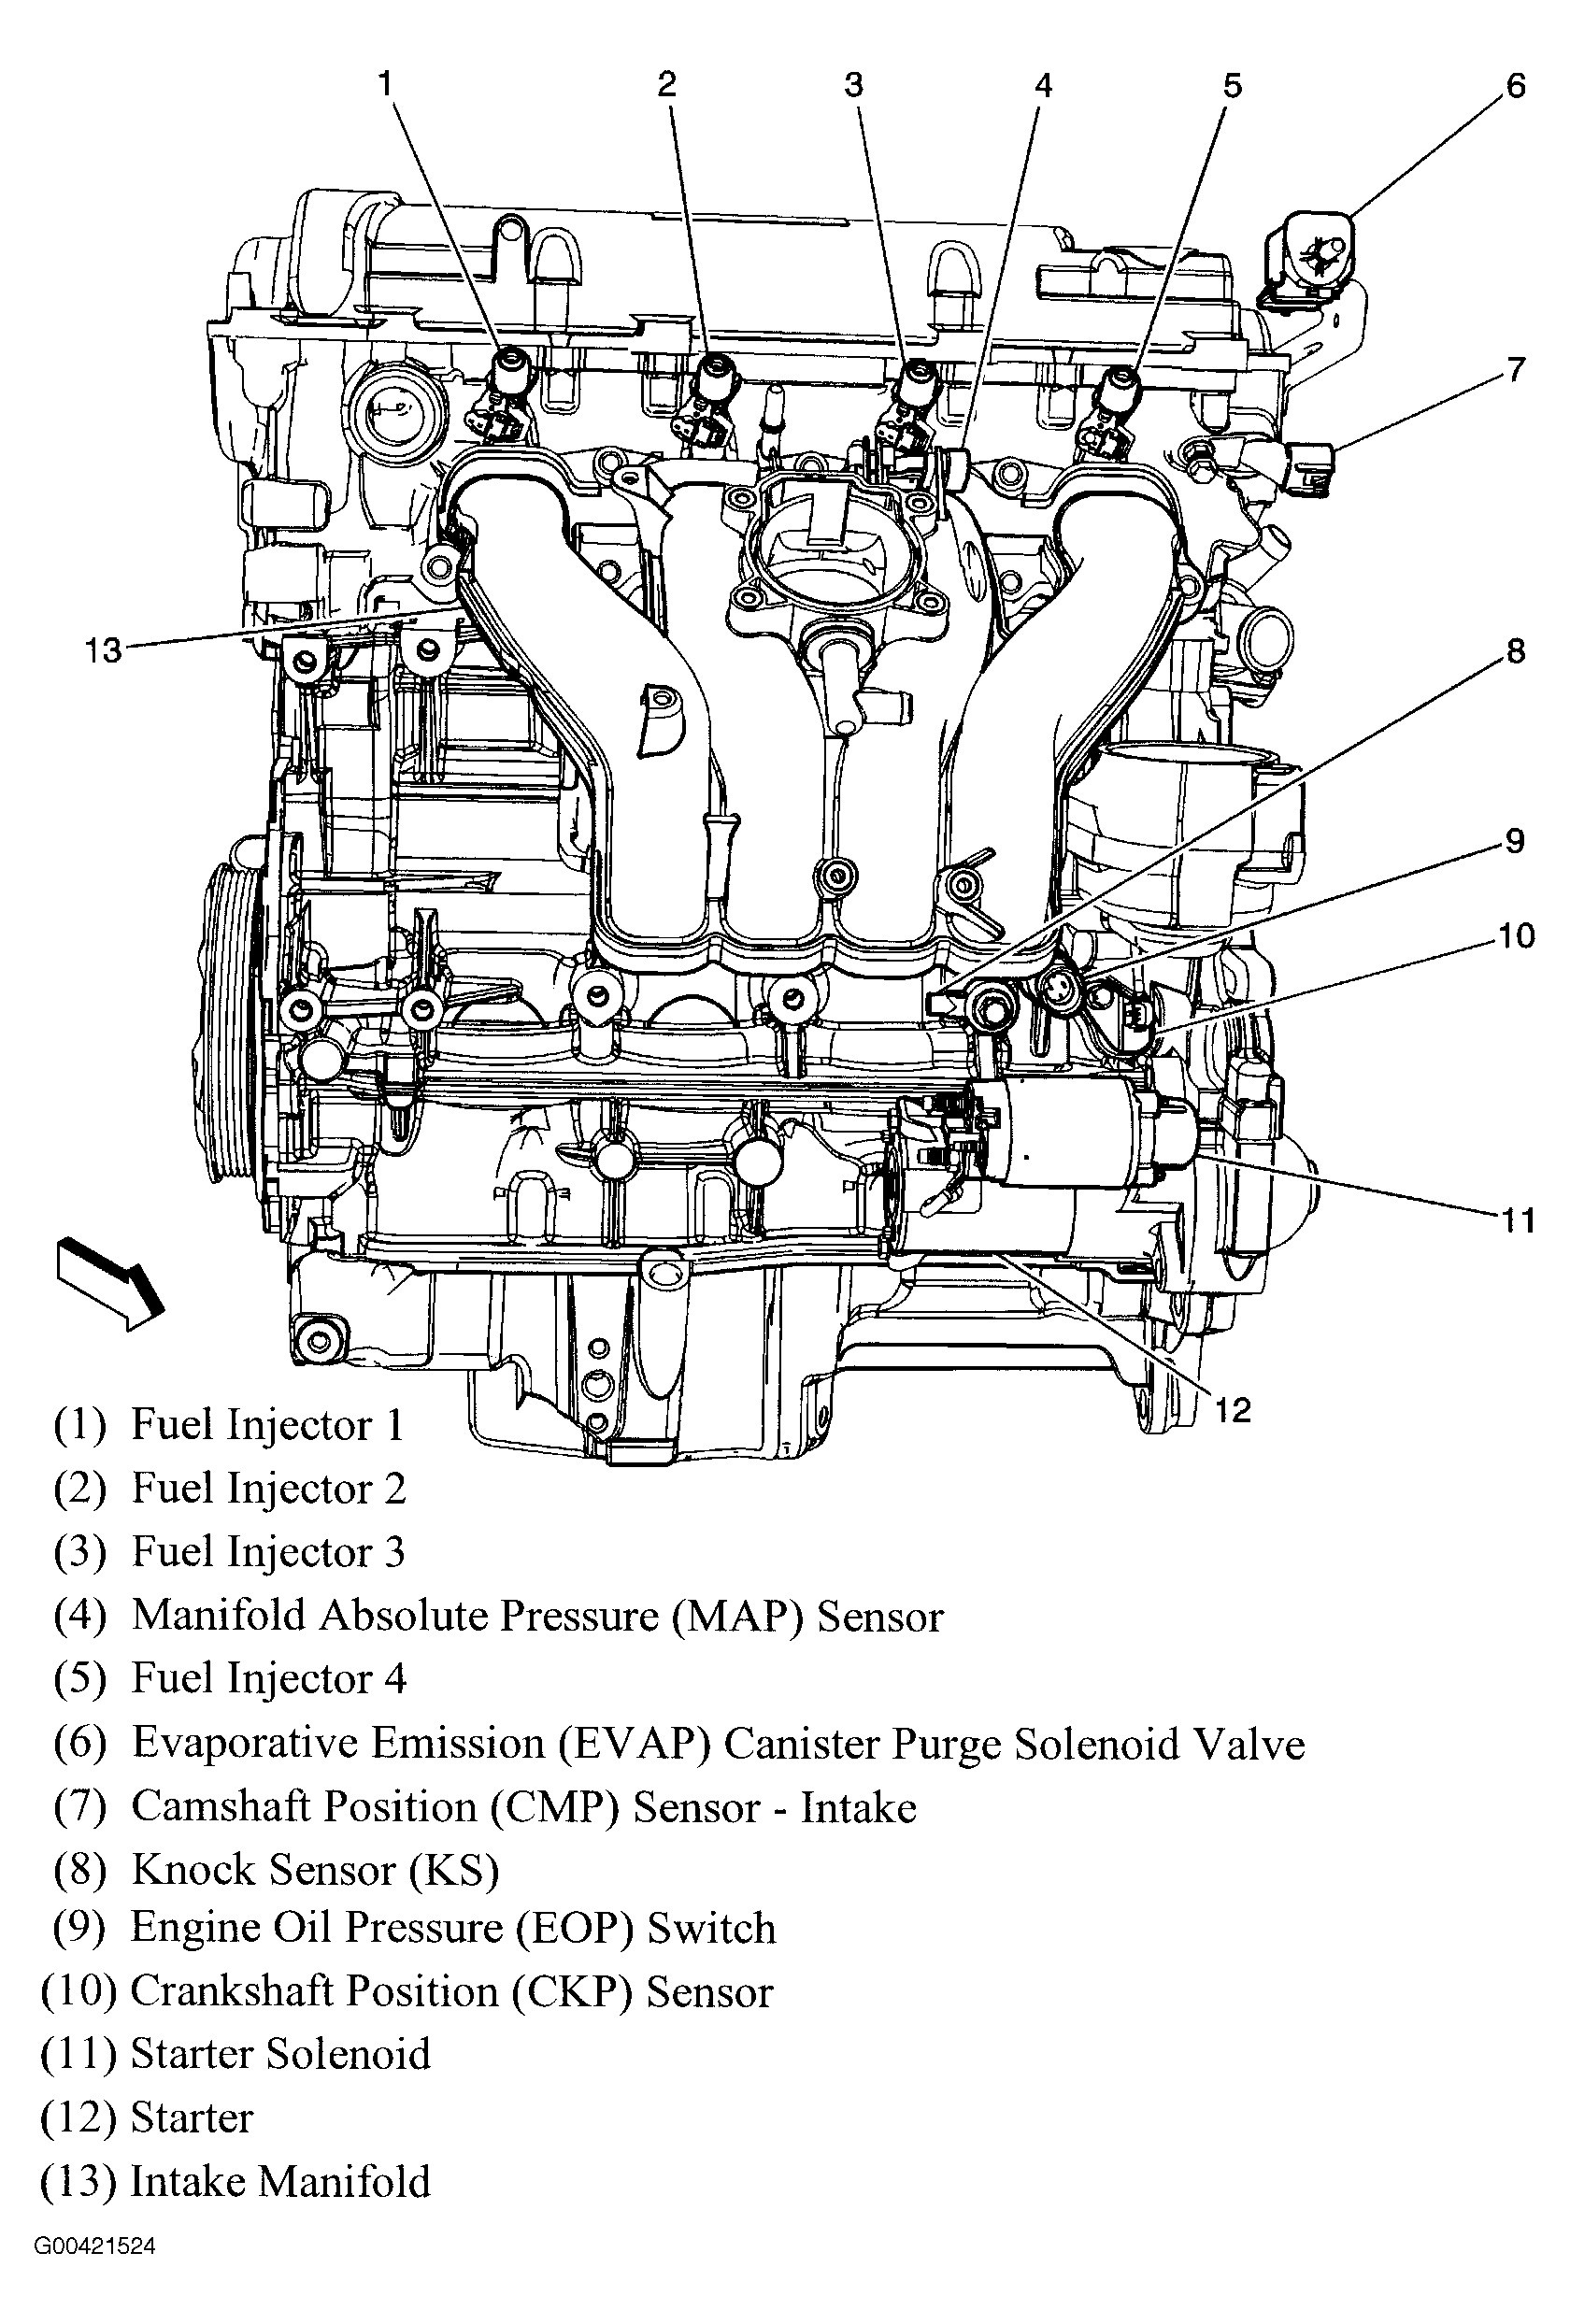 Twin Cam Engine Diagram - Wiring Diagram & Cable Management Harley Twin Cam Diagram Wiring Diagrm on